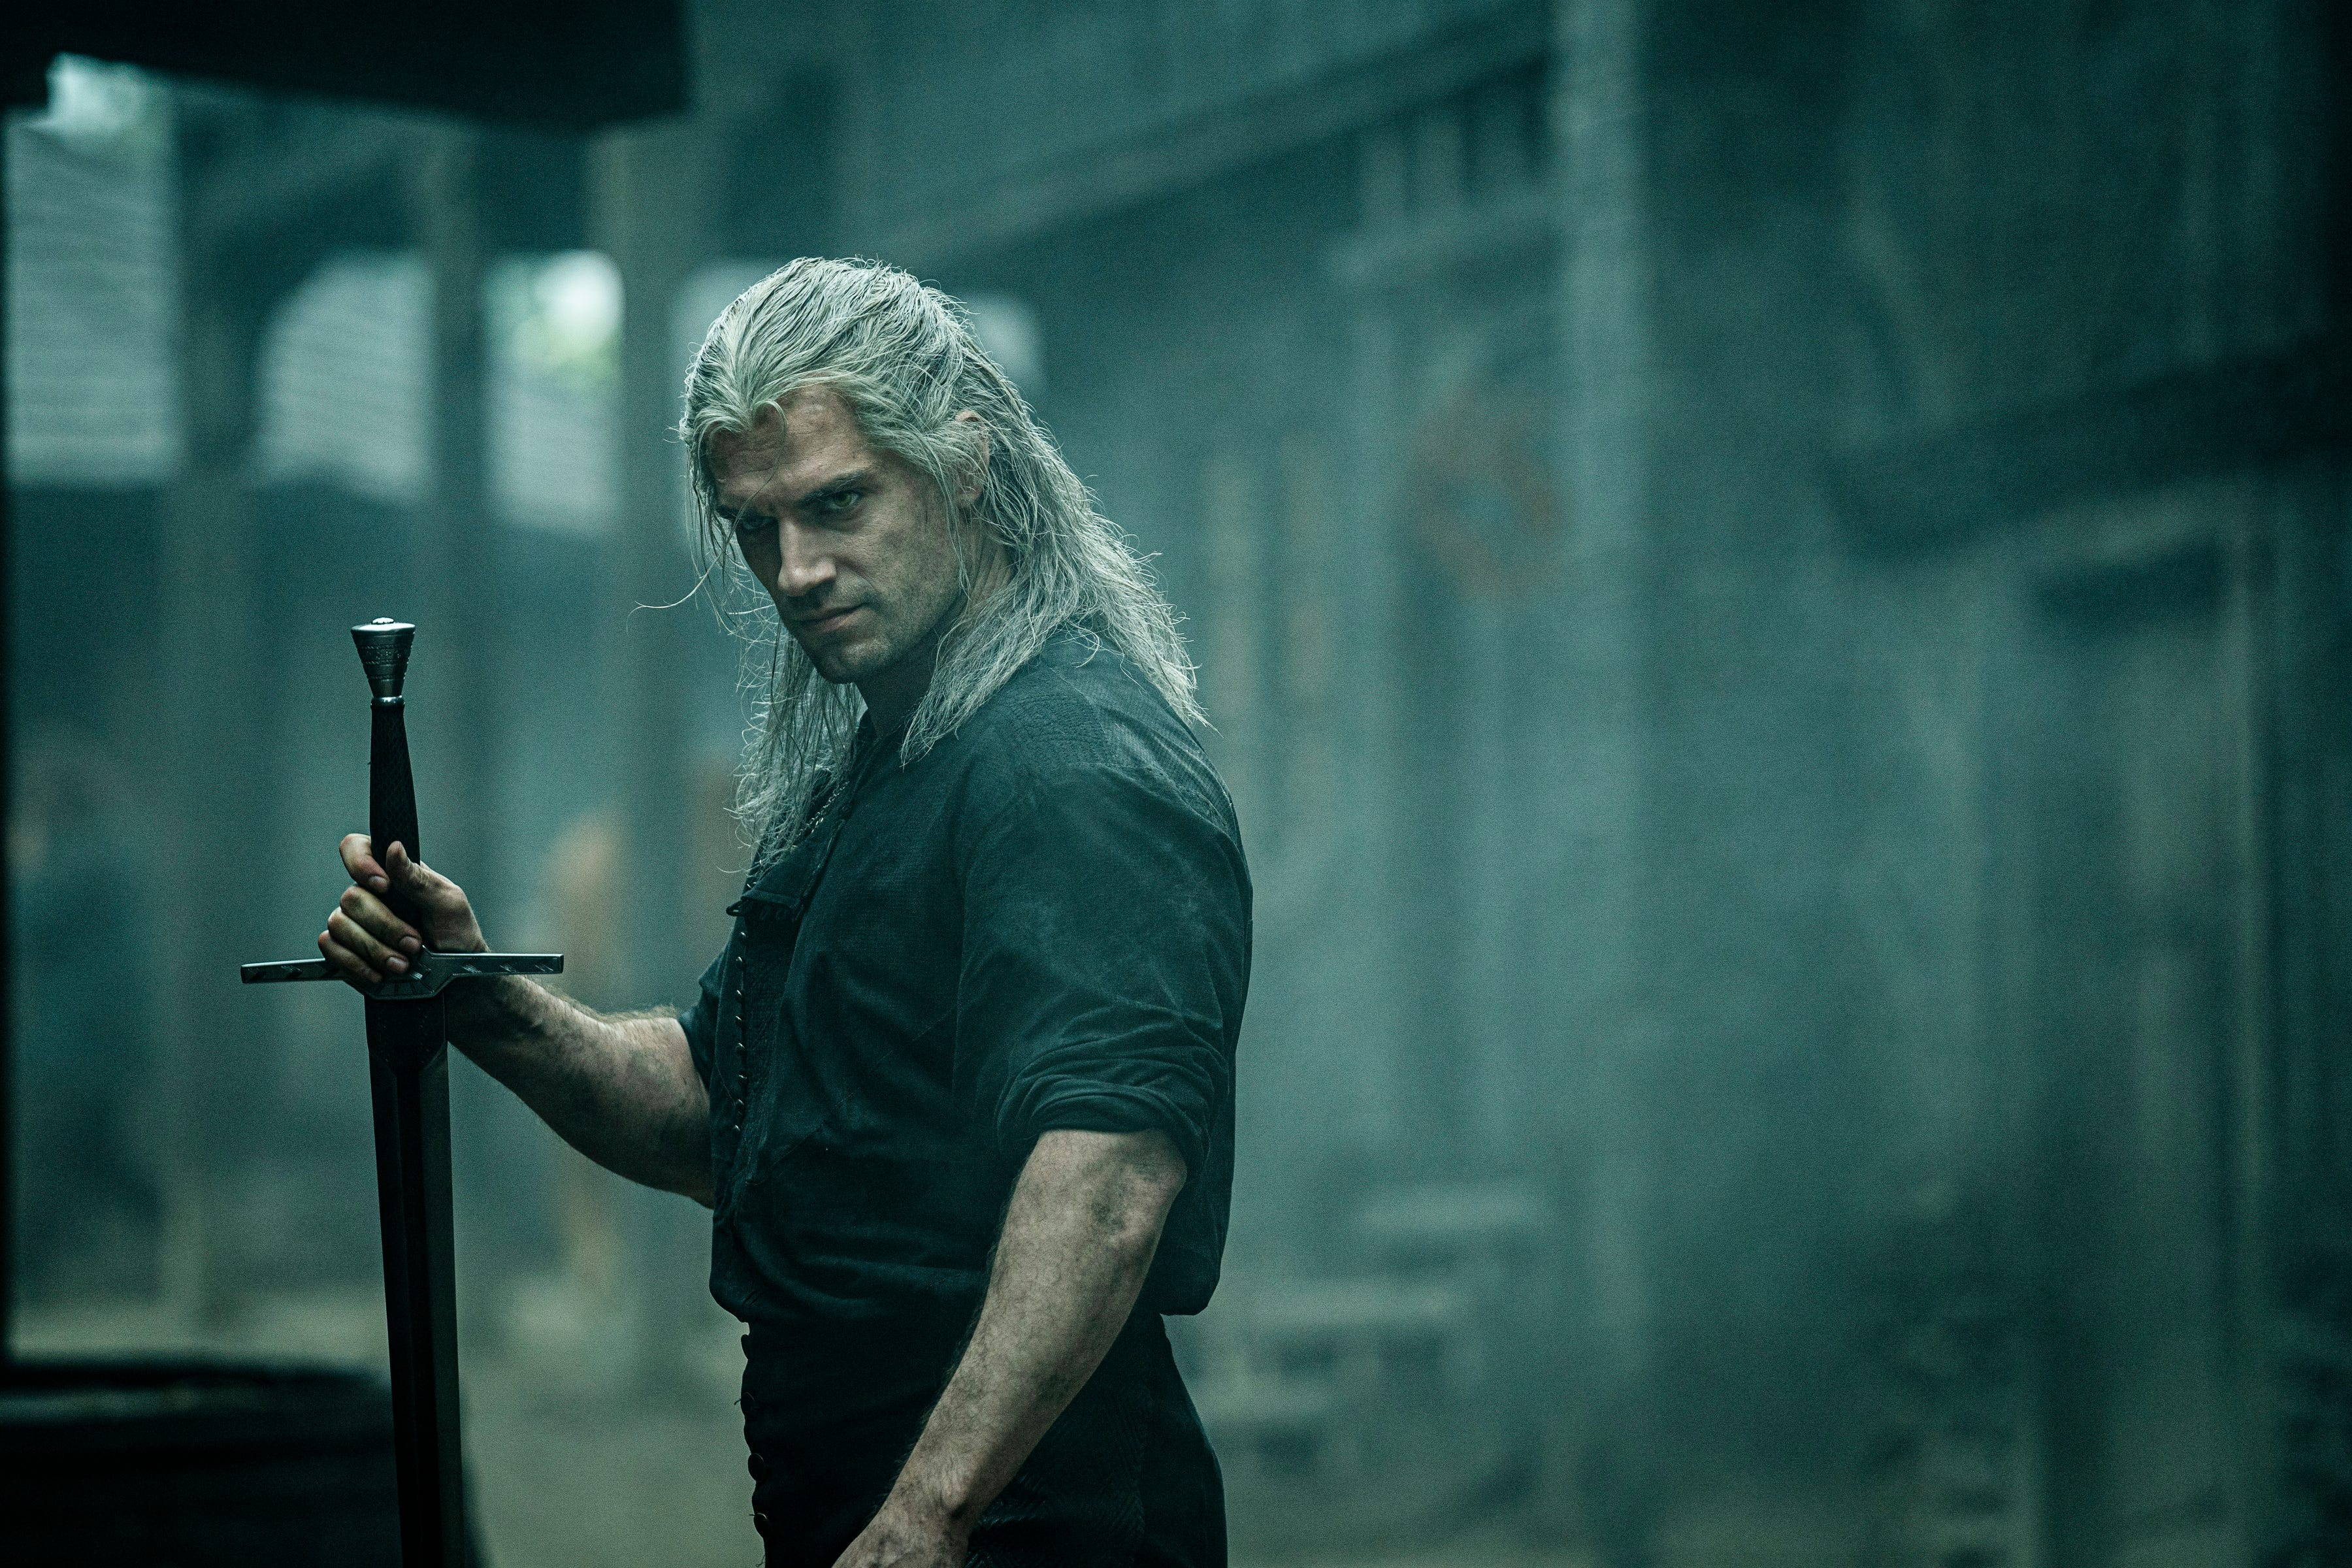 The Witcher': Henry Cavill Netflix fantasy is so bad, it's fantastic